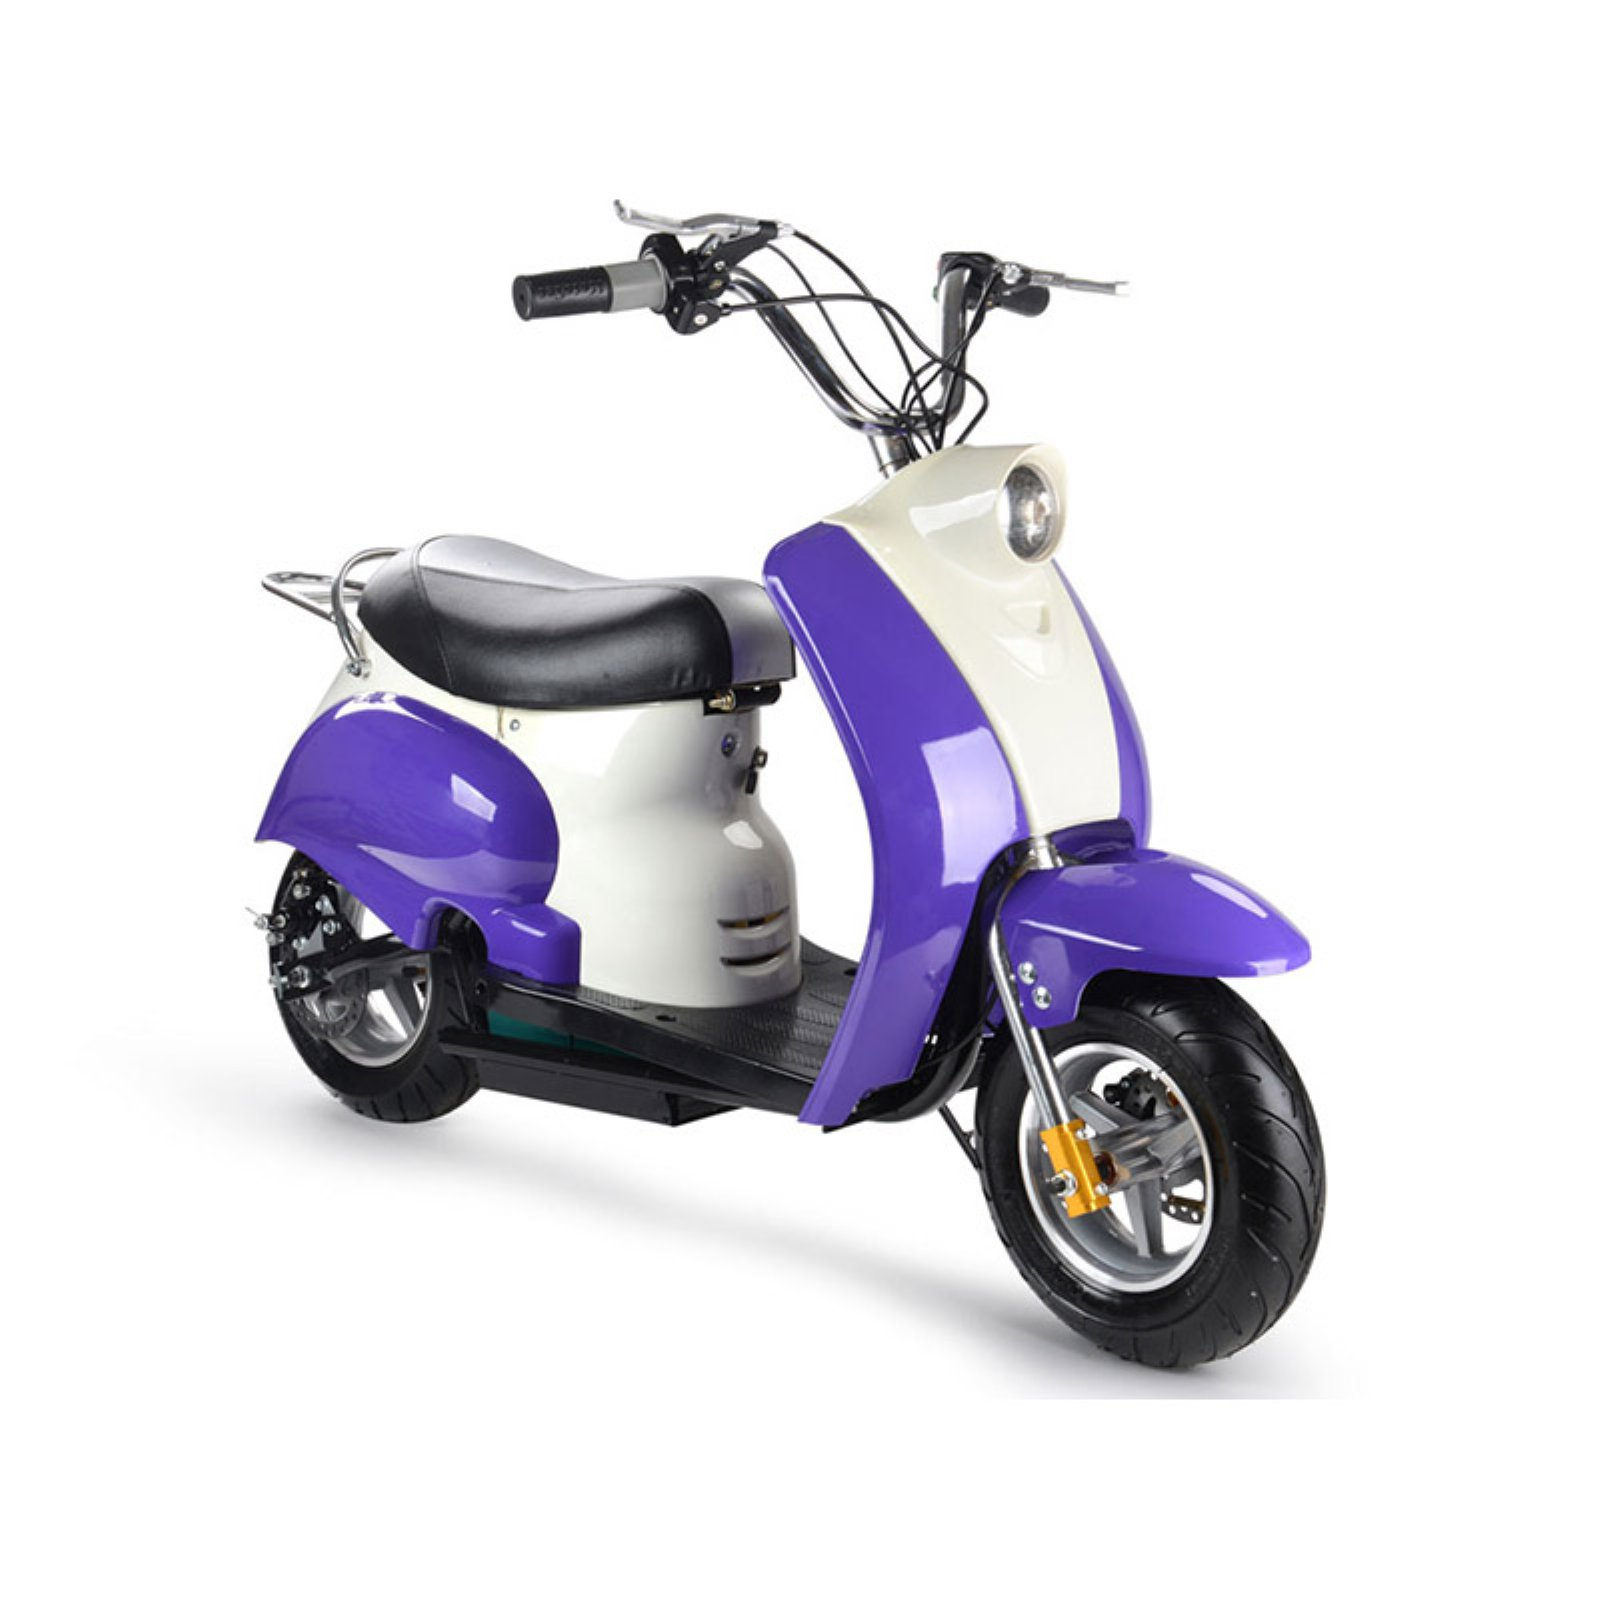 MototTec 24v Electric Moped